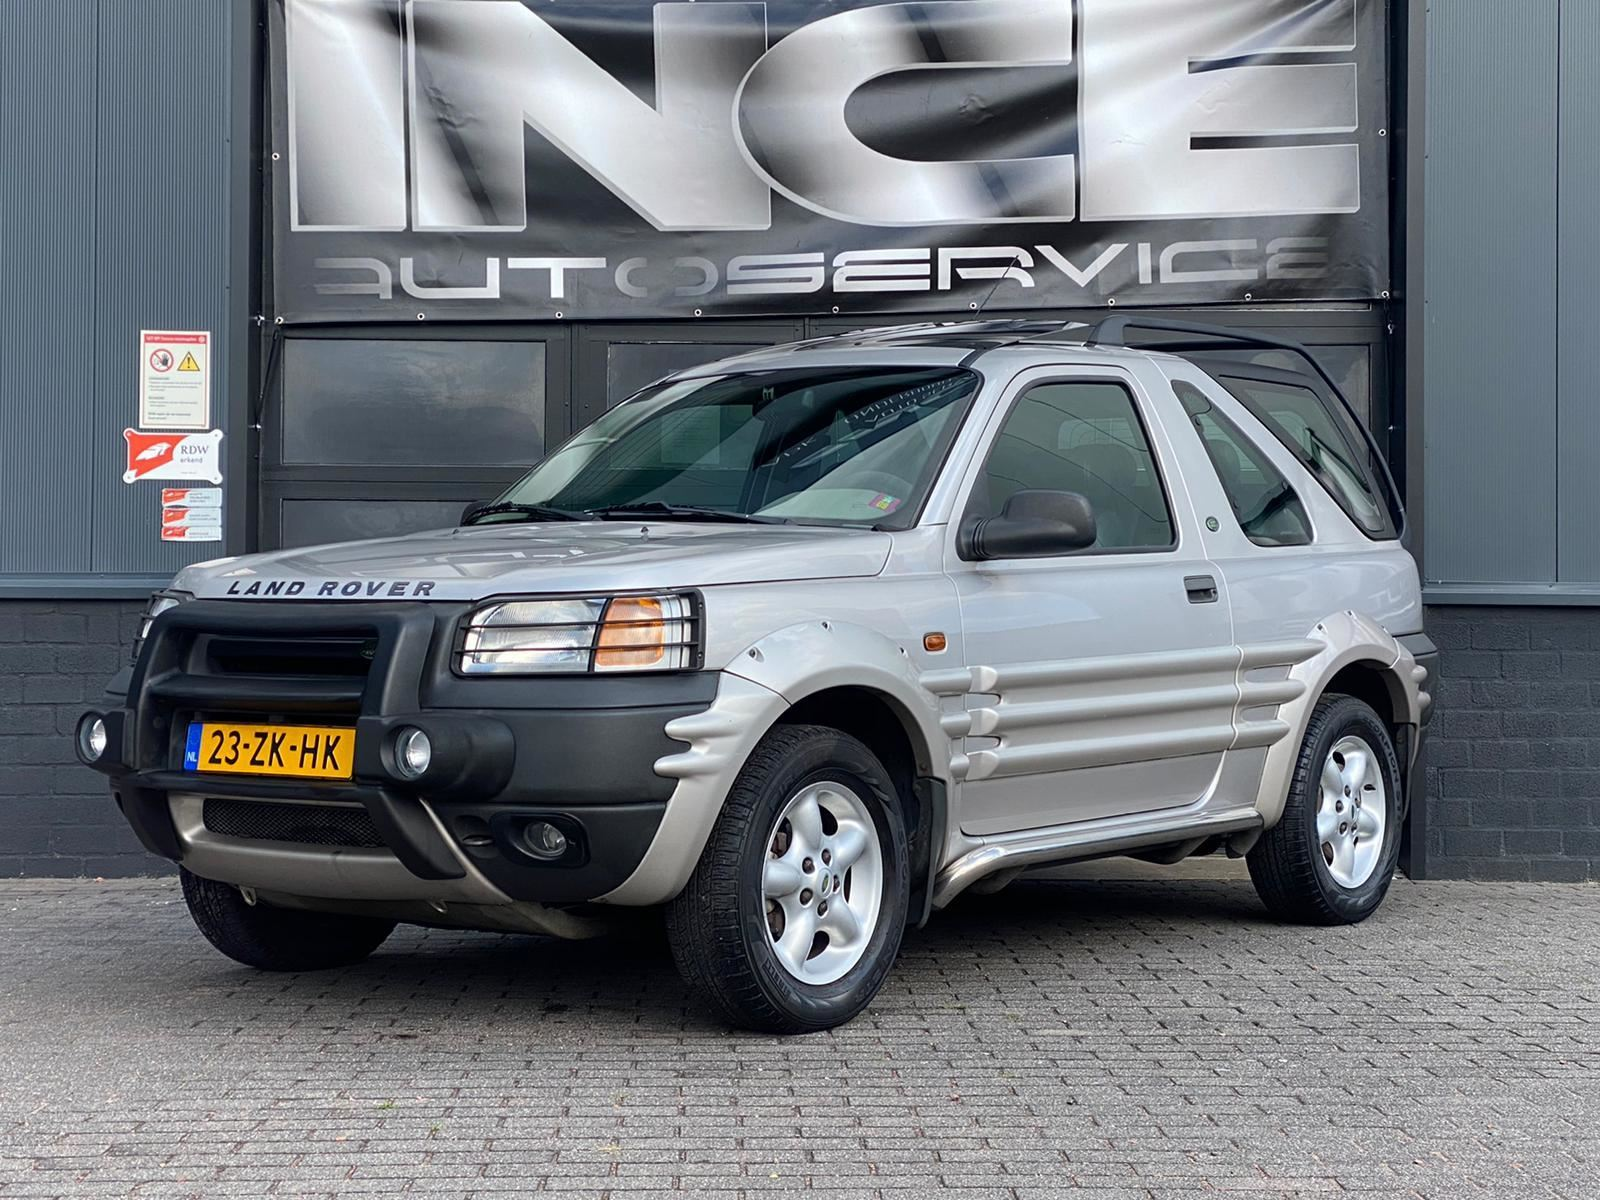 Land Rover Freelander occasion - Ince Autoservice